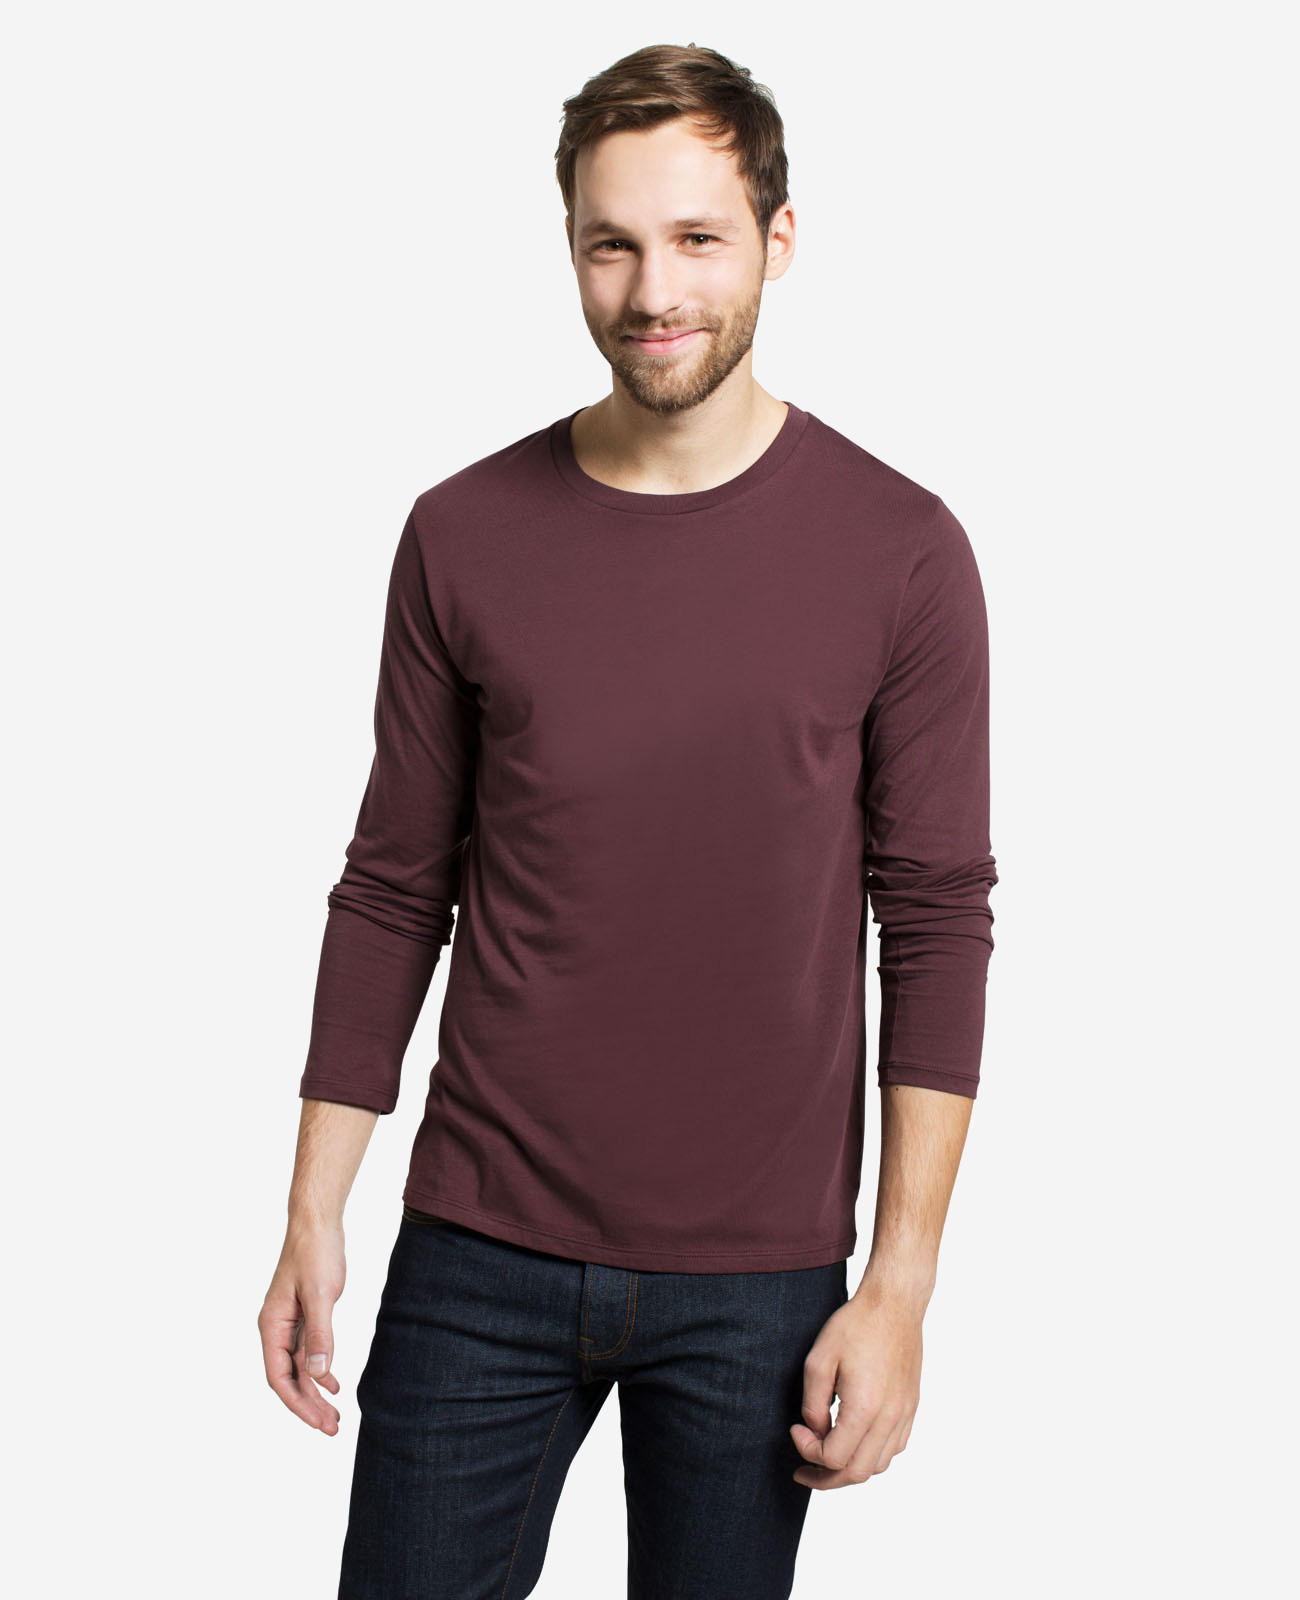 Men's Pima Long Sleeve Crew Neck T-shirt